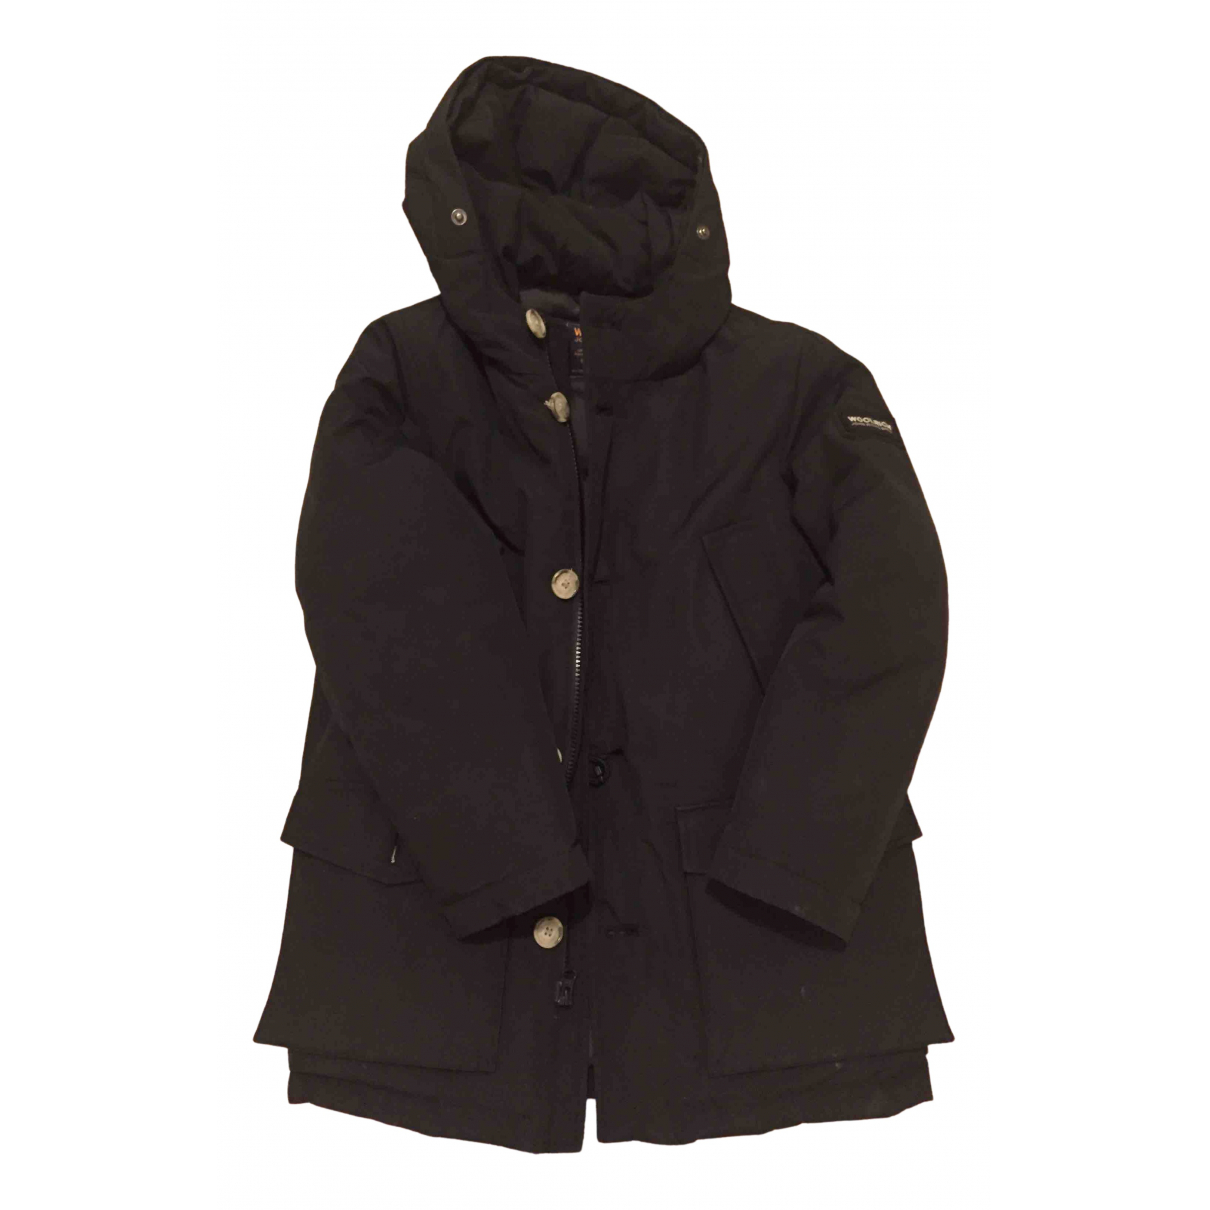 Woolrich \N Black jacket & coat for Kids 8 years - up to 128cm FR